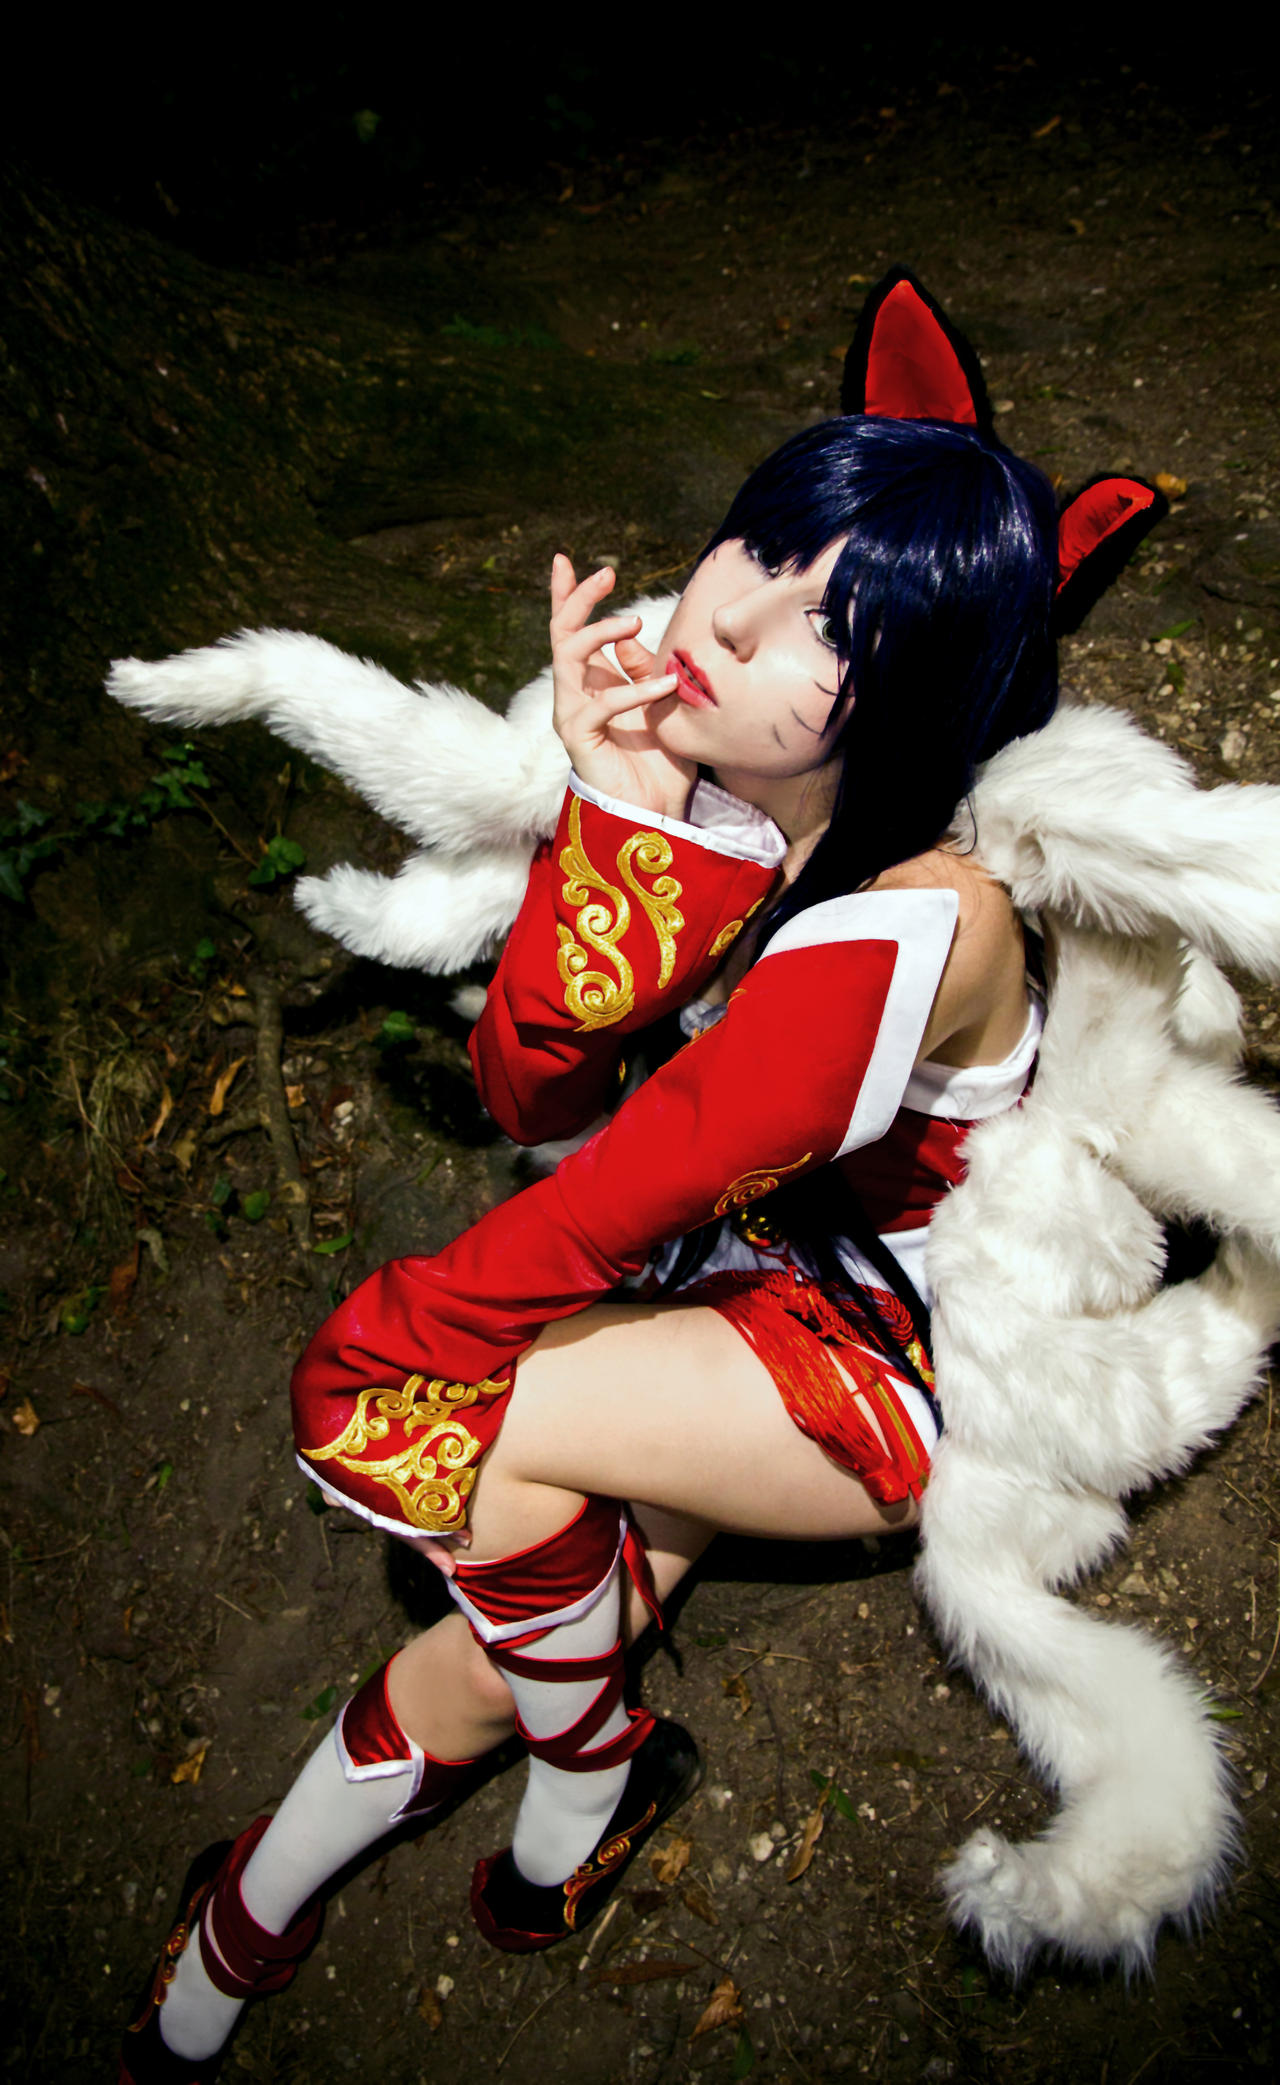 Ahri League Of Legends Cosplay League of legends ahri cosplayAhri League Of Legends Cosplay